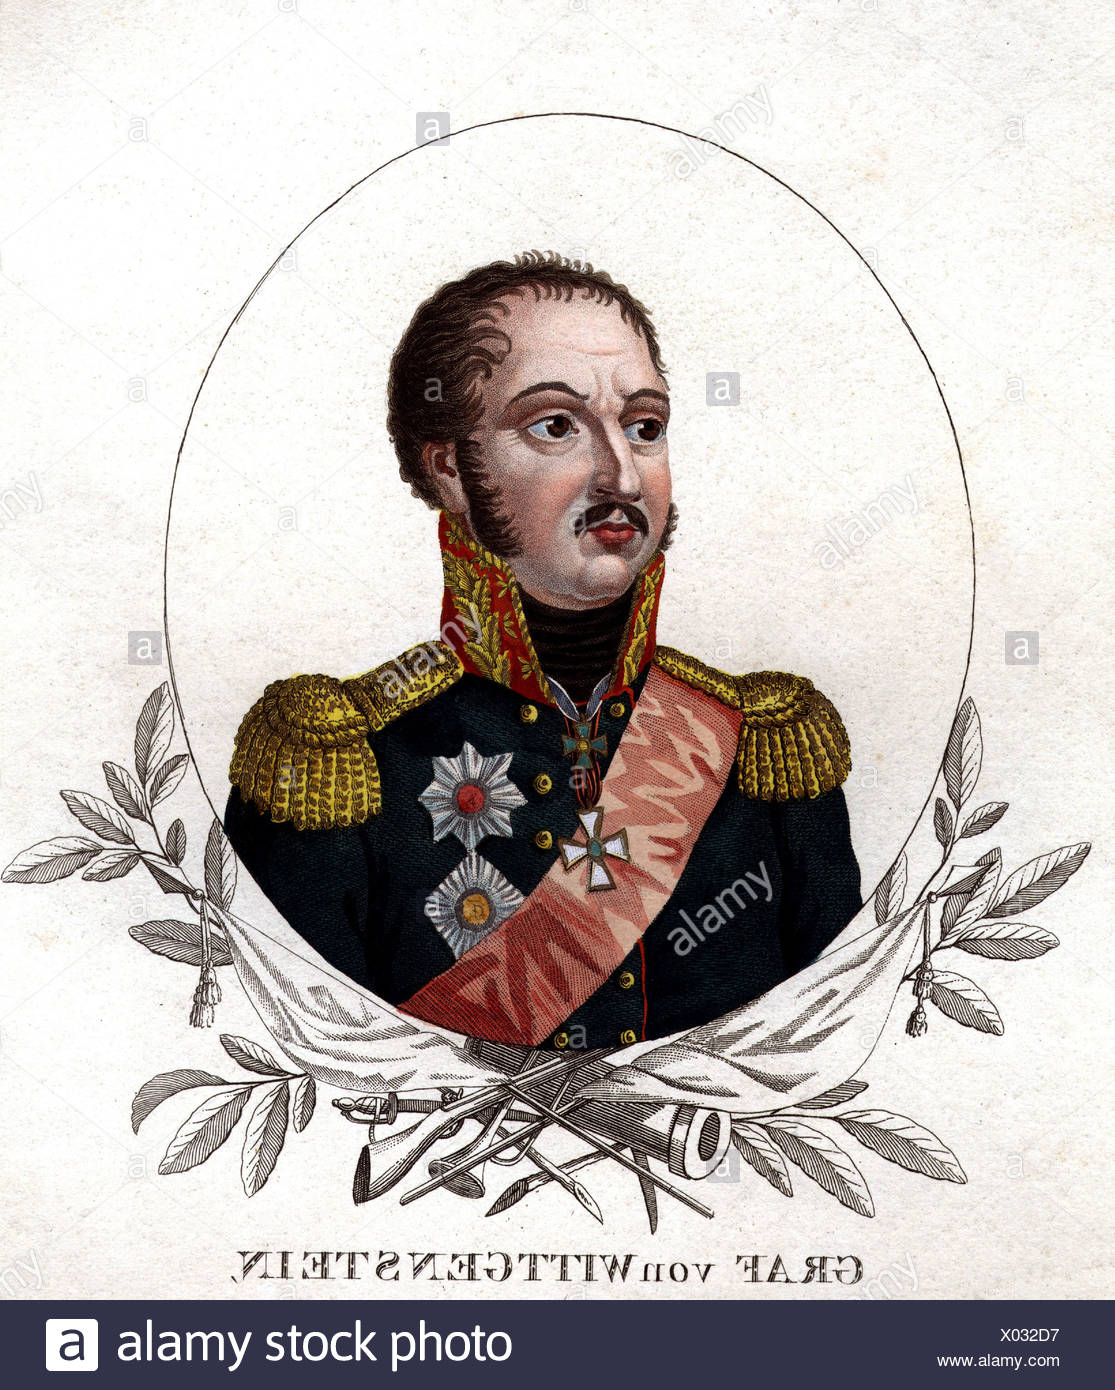 Wittgenstein, Ludwig Adolf von, 5.1.1769 - 11.6.1843, Russian General, portrait, coloured steel engraving, 19th century, , Artist's Copyright has not to be cleared Stock Photo